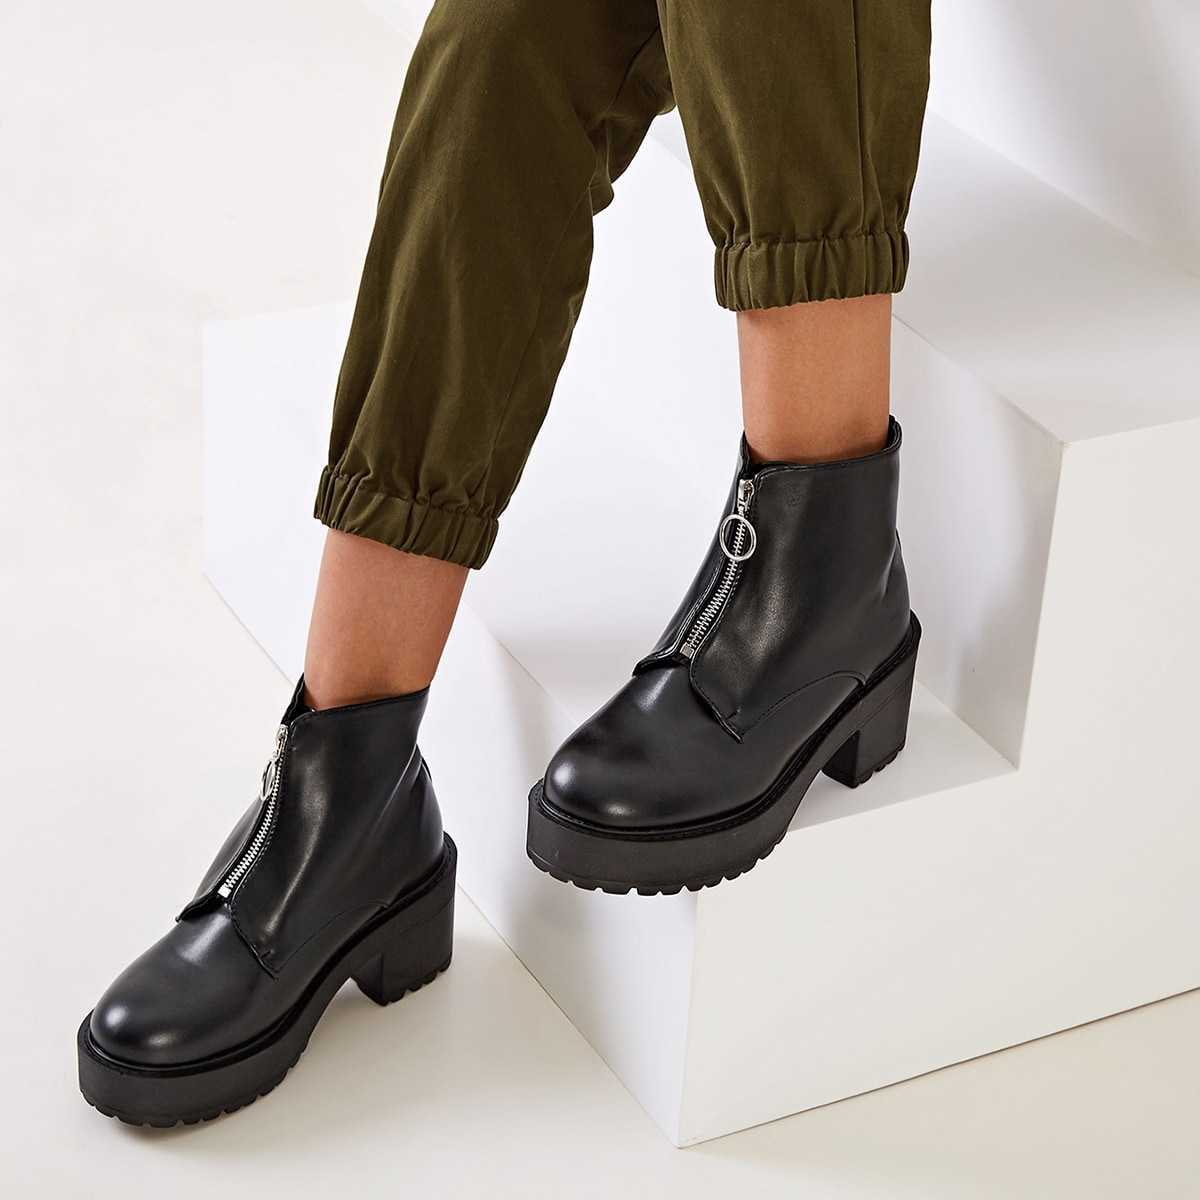 Solid Zip Front Chunky Heels in Black by ROMWE on GOOFASH